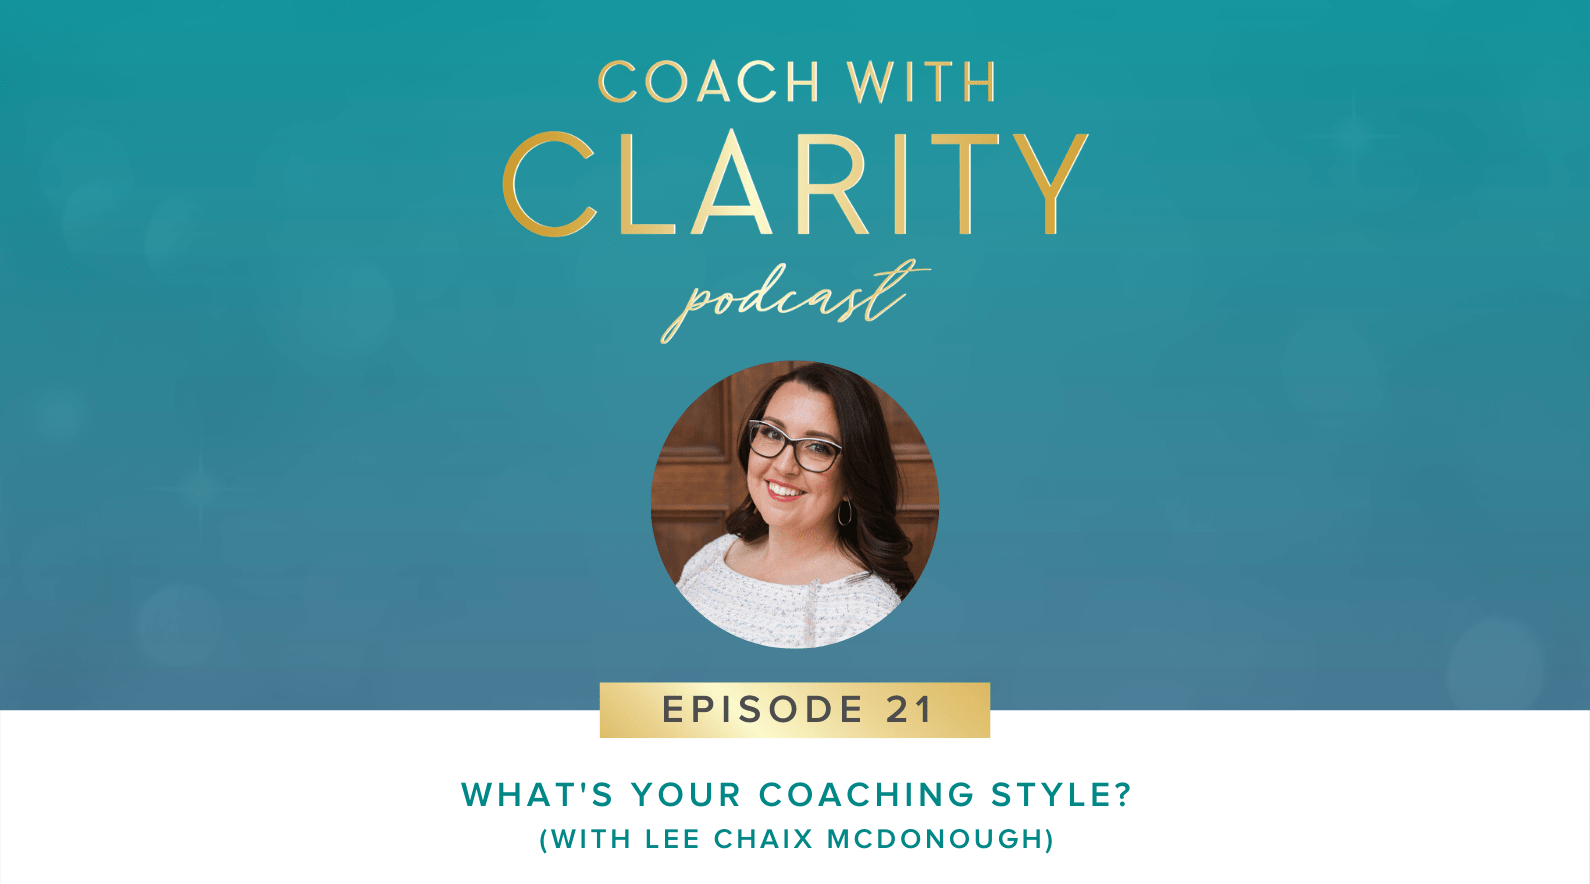 Coach with Clarity Podcast - Coaching Through Shame